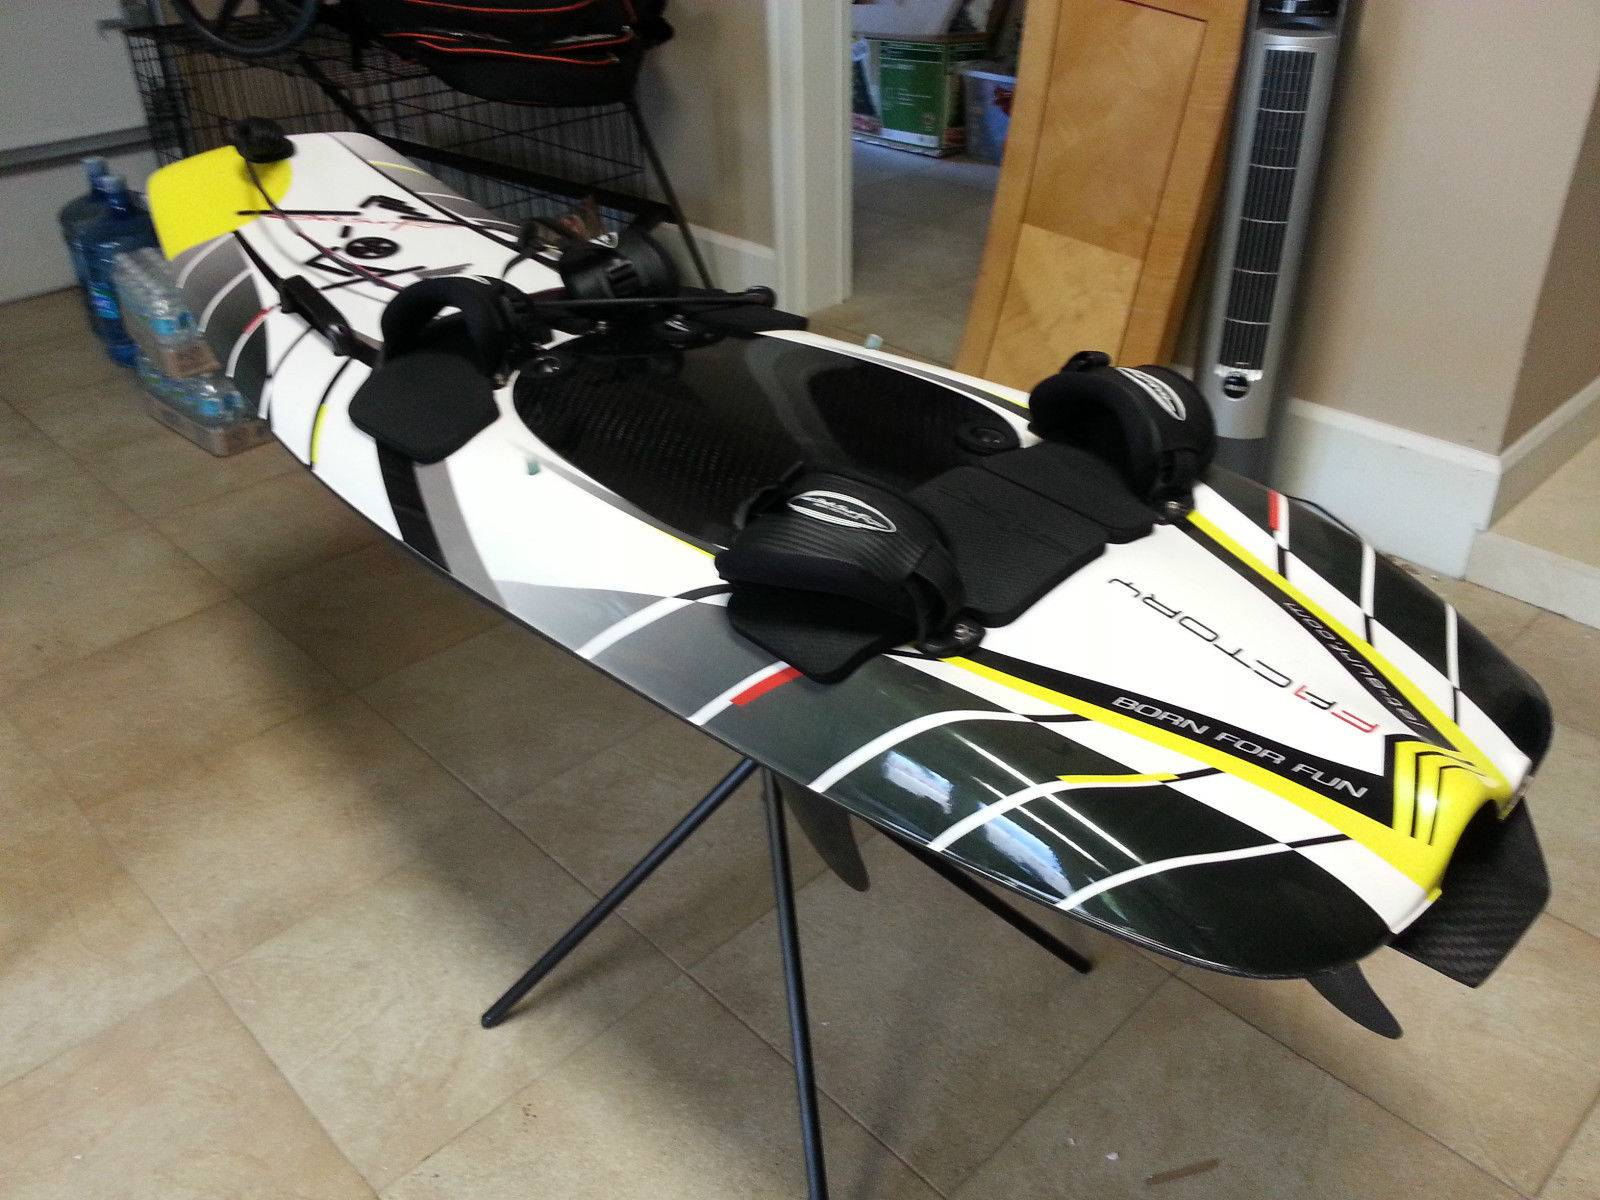 New 2016 JetSurf Factory Racing Series